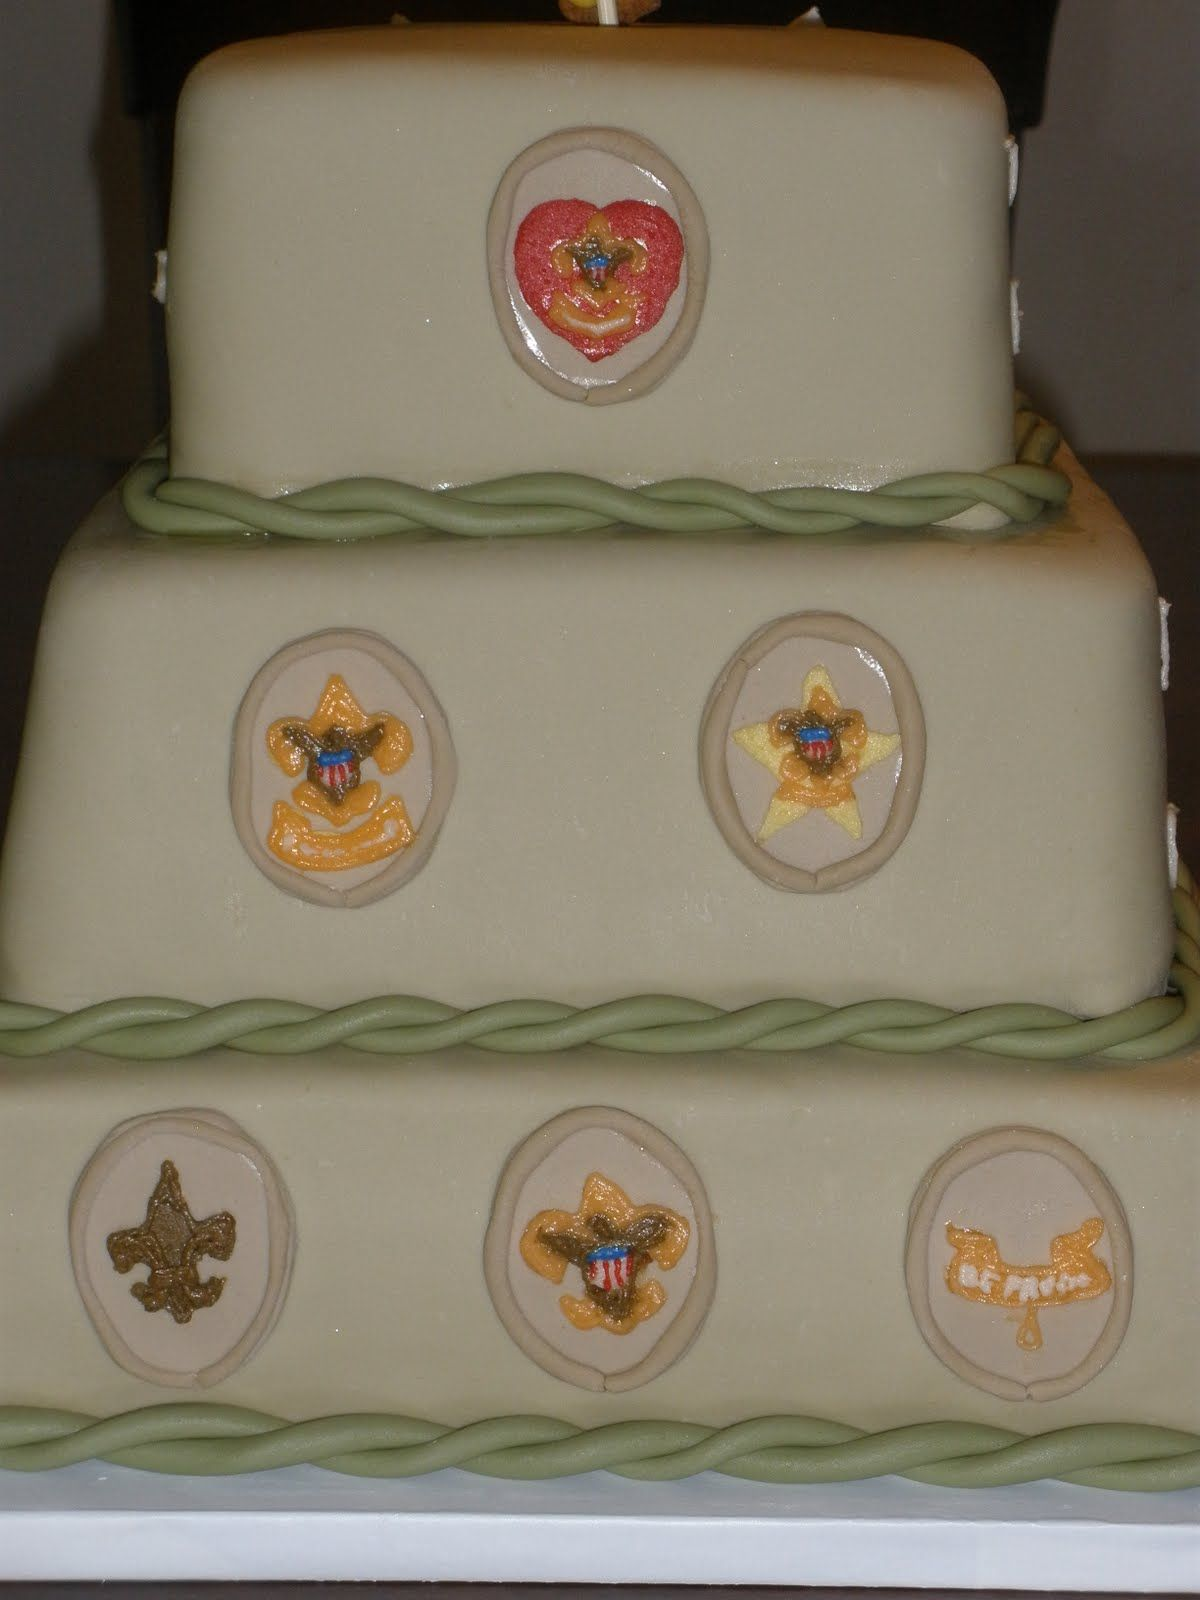 ideas for eagle scout cakes | Itu0027s a piece of cake Boy Scout Eagle Award & ideas for eagle scout cakes | Itu0027s a piece of cake: Boy Scout Eagle ...